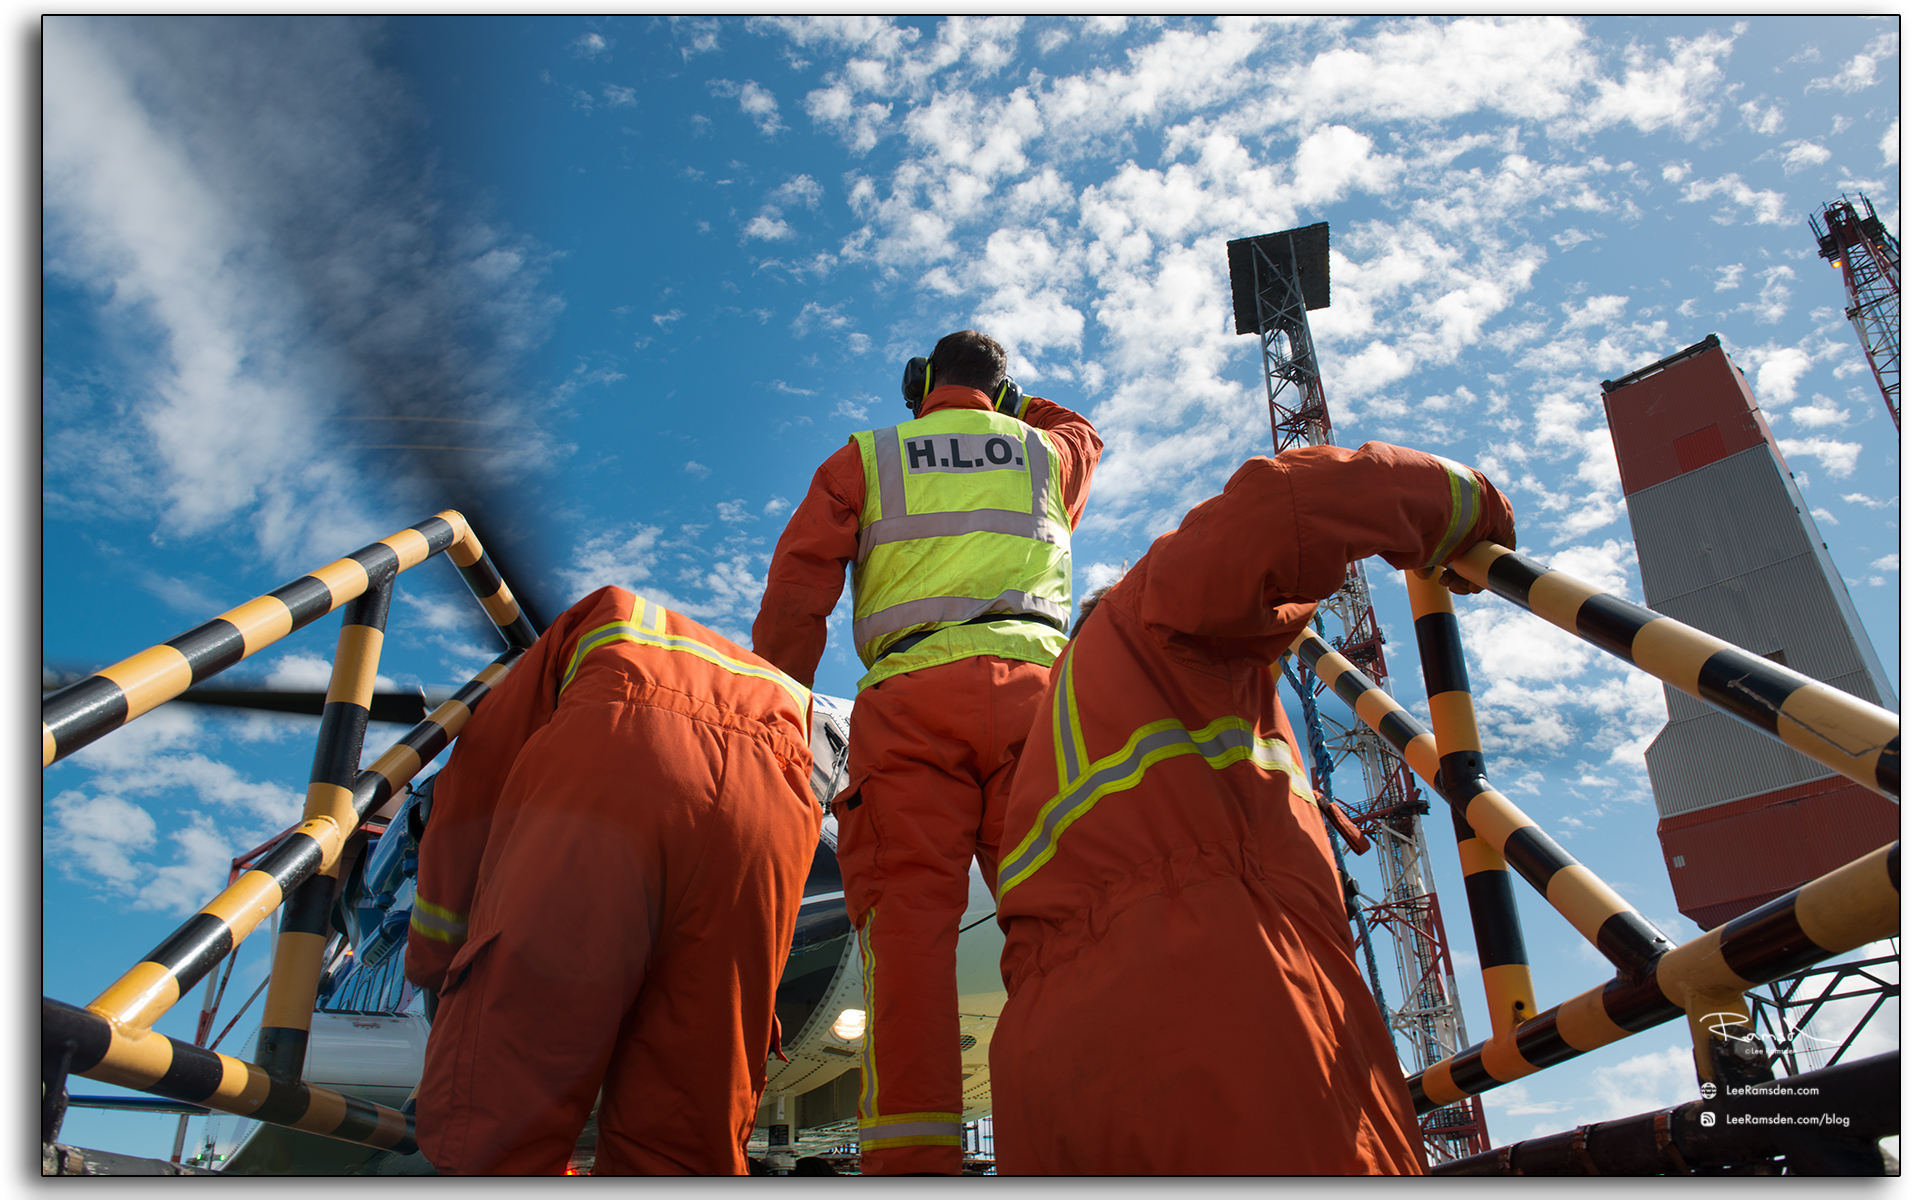 helideck, crew, HLO, offshore, oil and gas platform